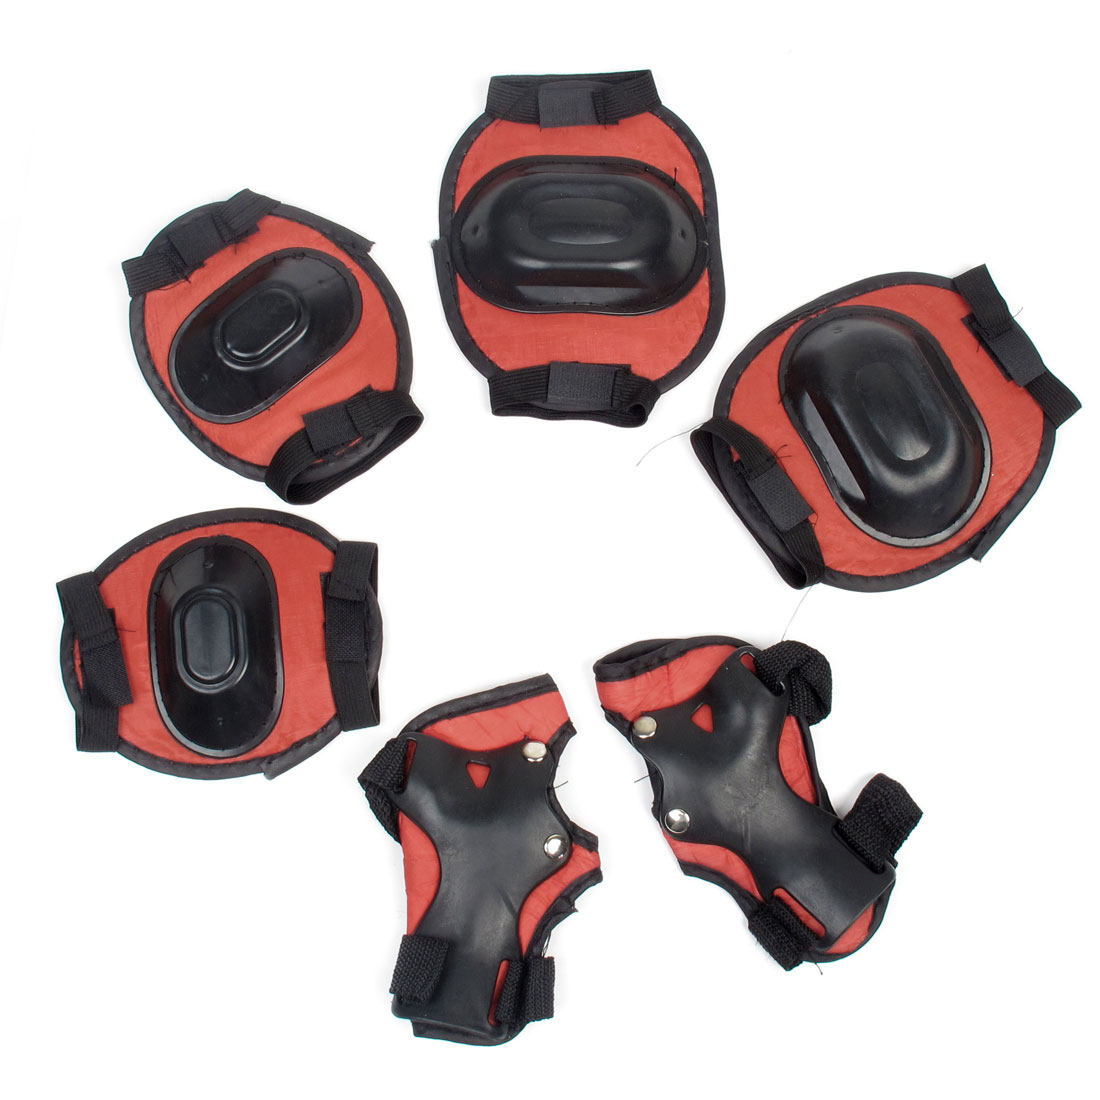 Skating Pads Palm Knee Elbow Protective Support Set Black Red for Kids